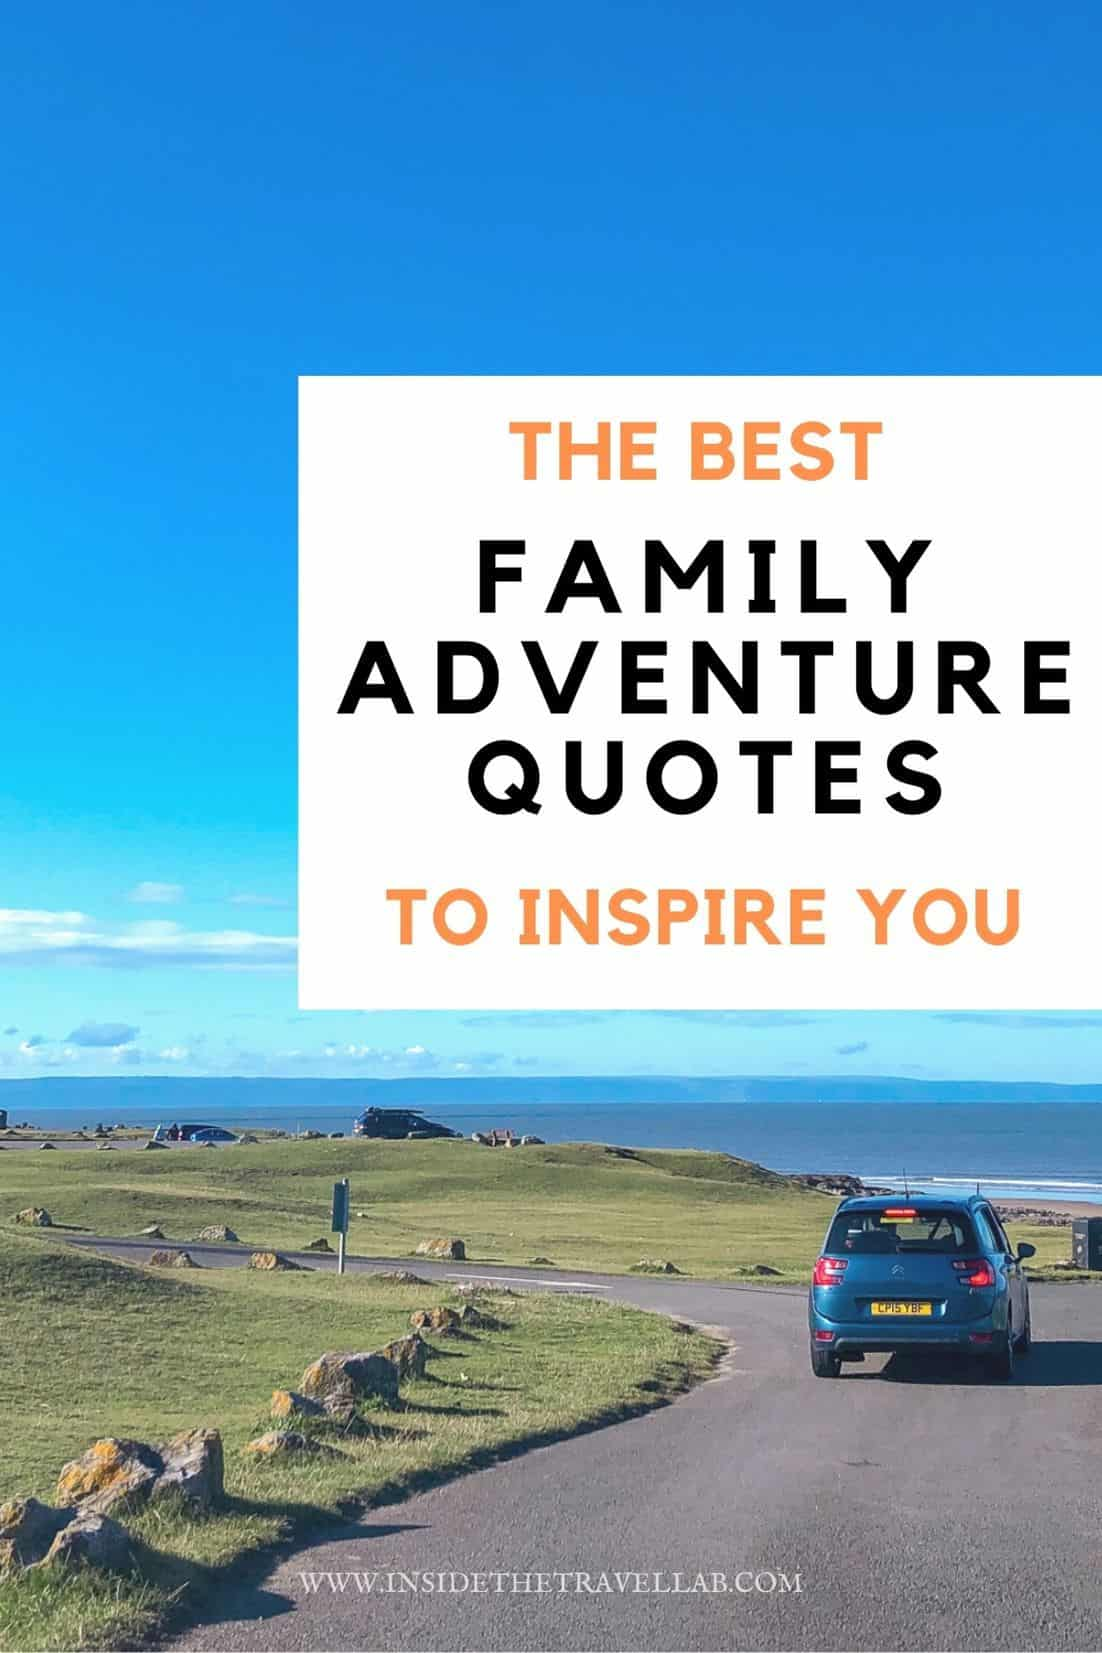 Family travel quotes cover image